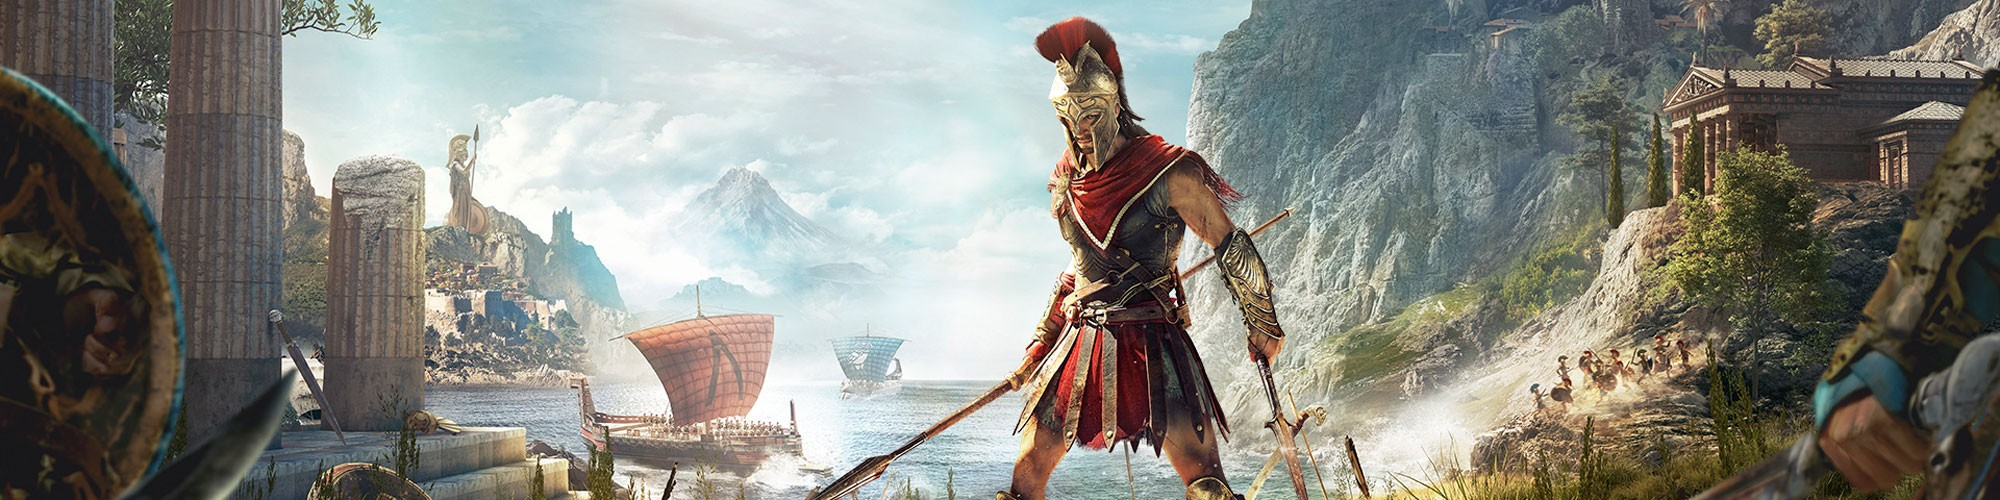 Assassin S Creed Odyssey For Pc Origin